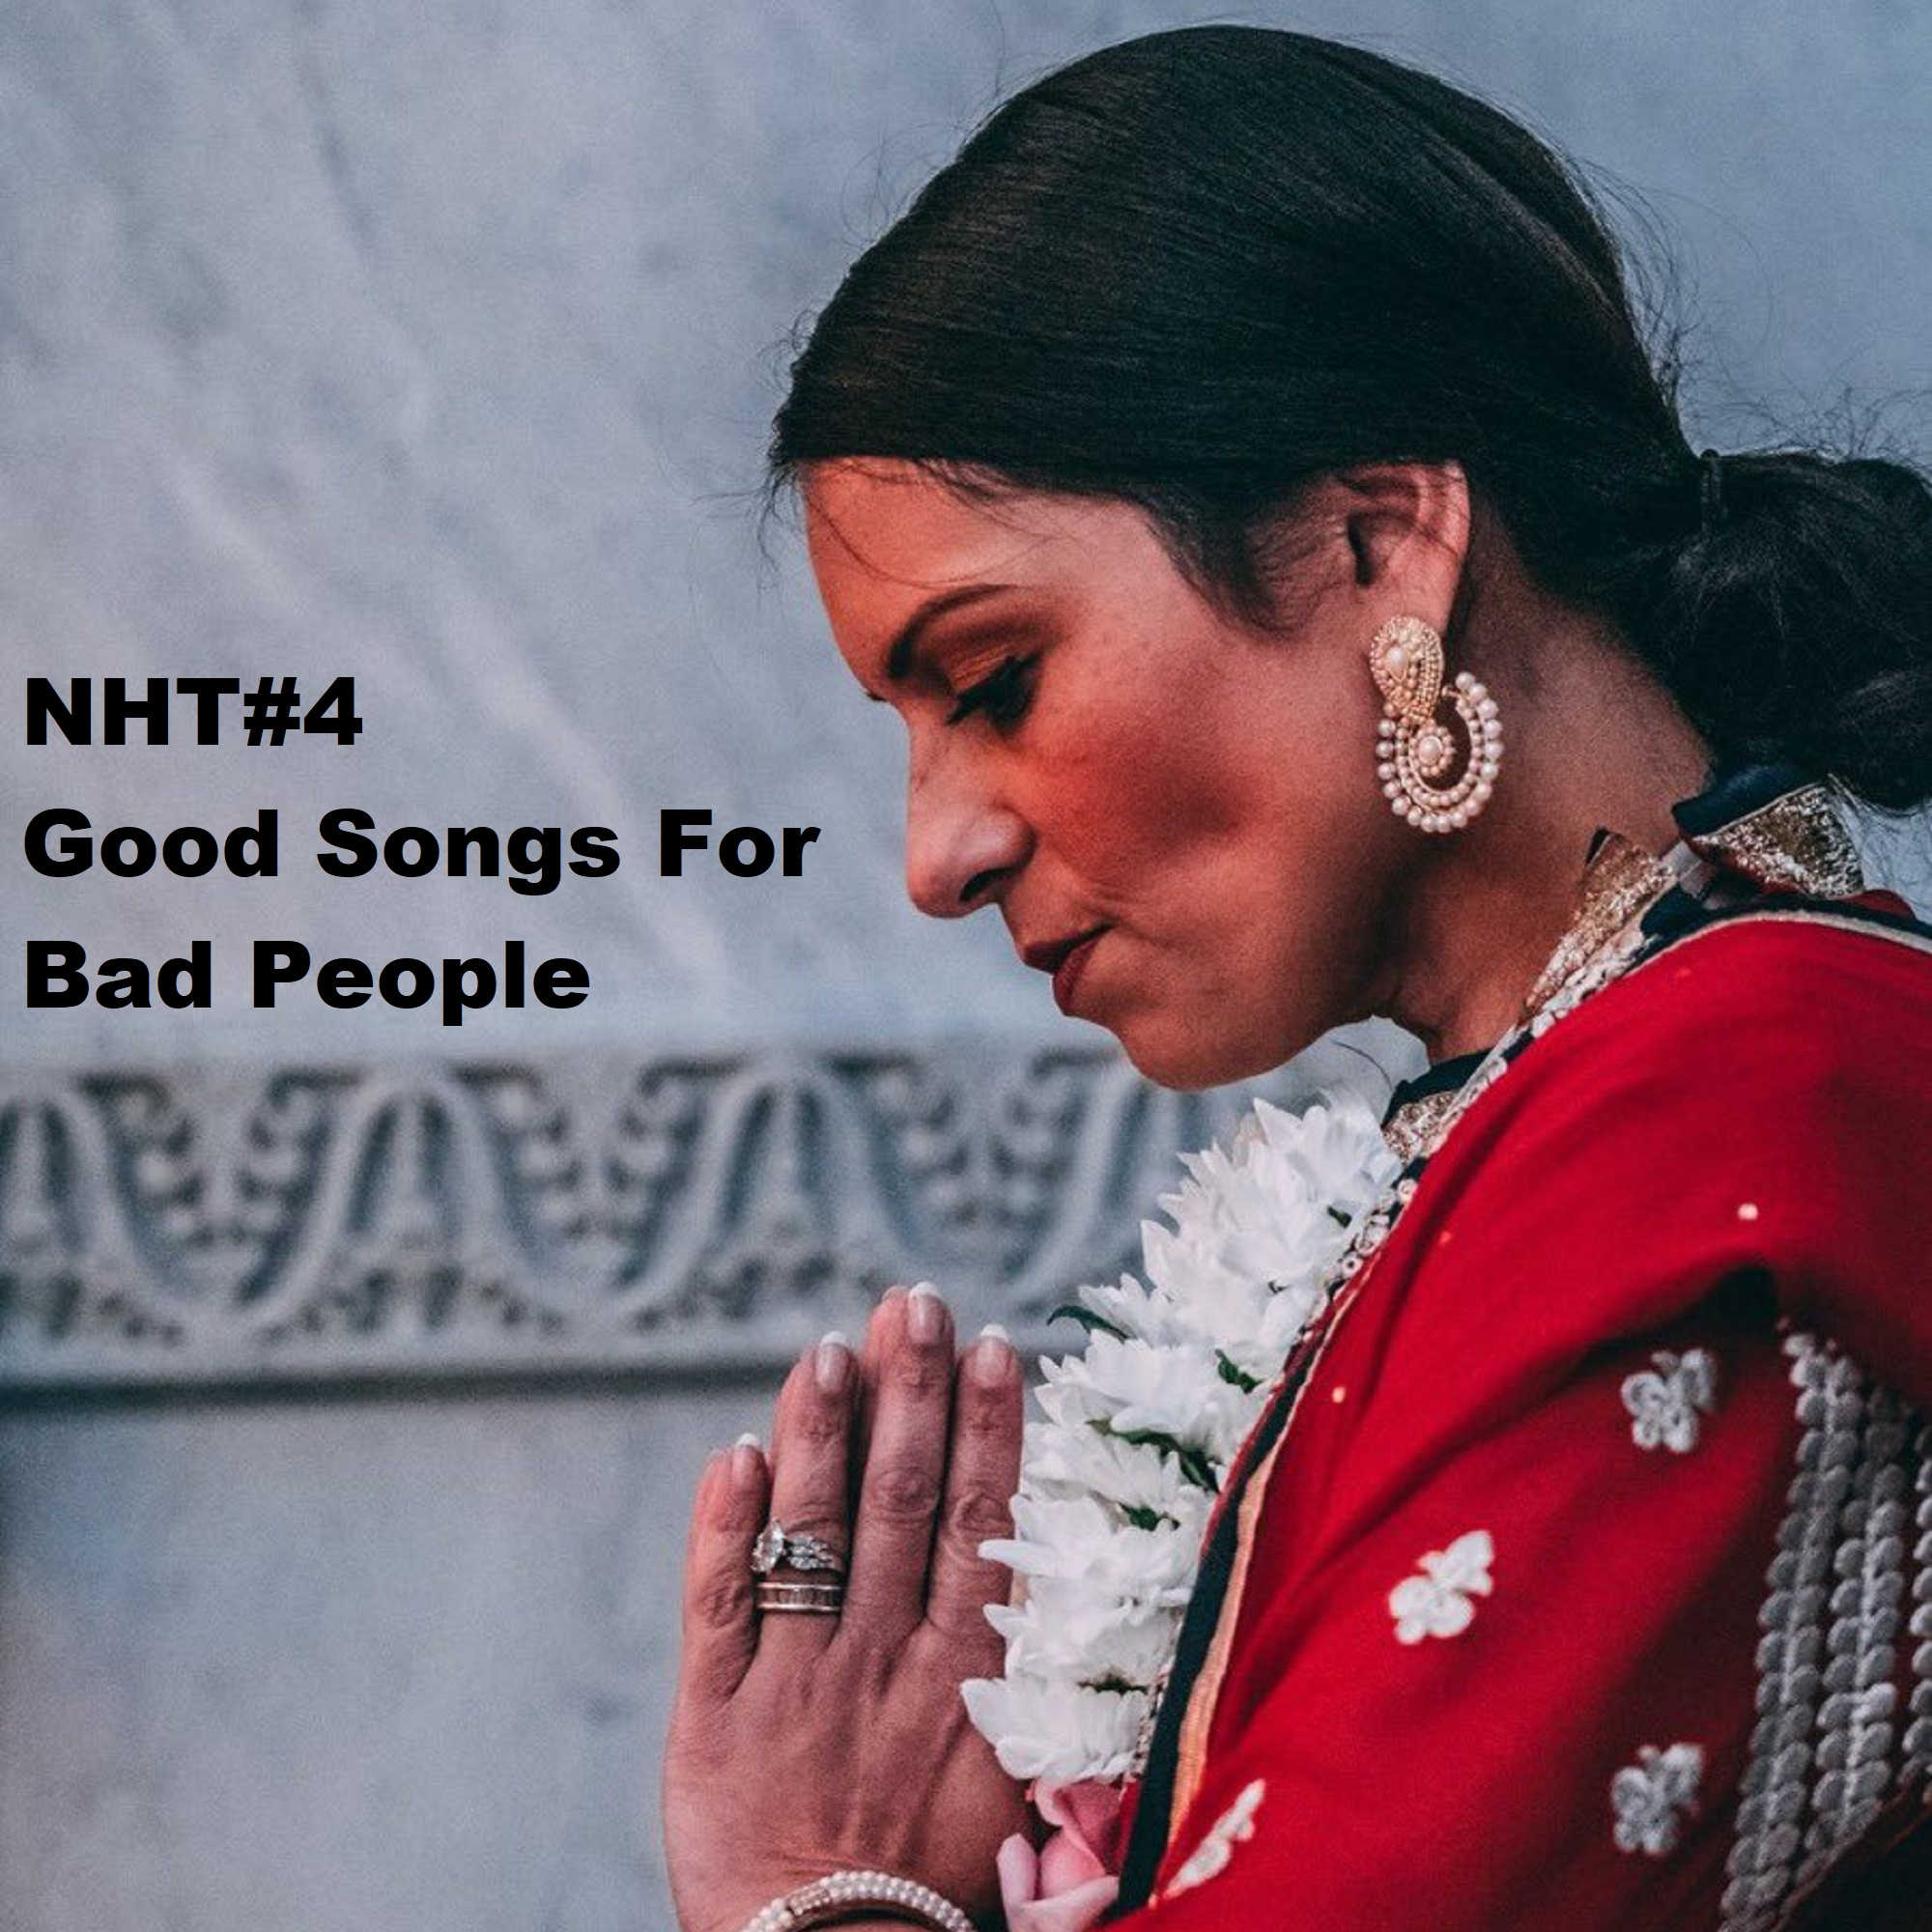 NHT#4 ... Good Songs For Bad People....